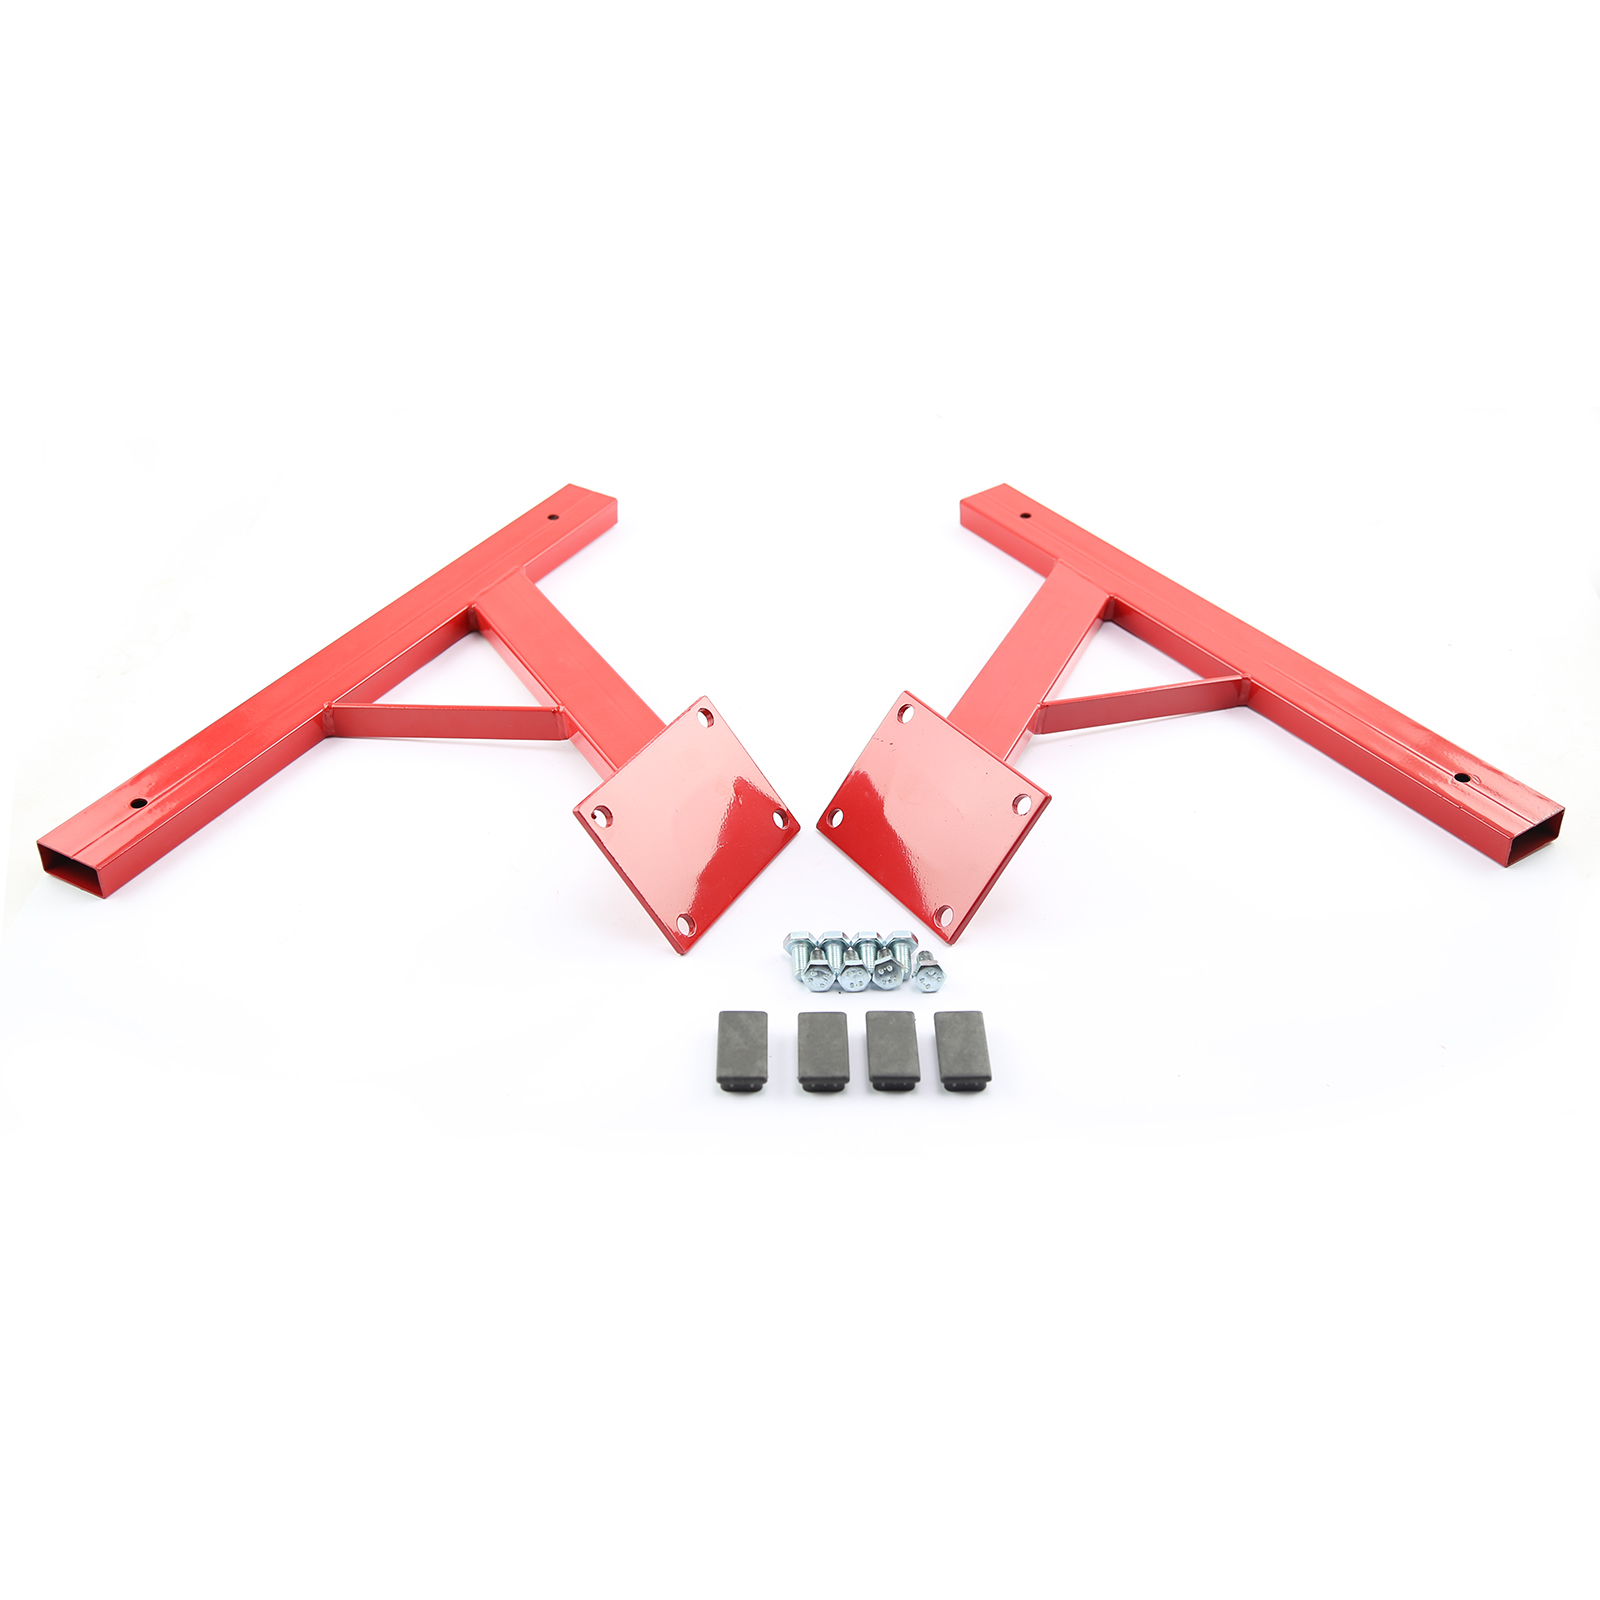 Chevy LS LS1 LS2 LS3 LS6 LS7 Powdercoated Engine Storage Stand Legs